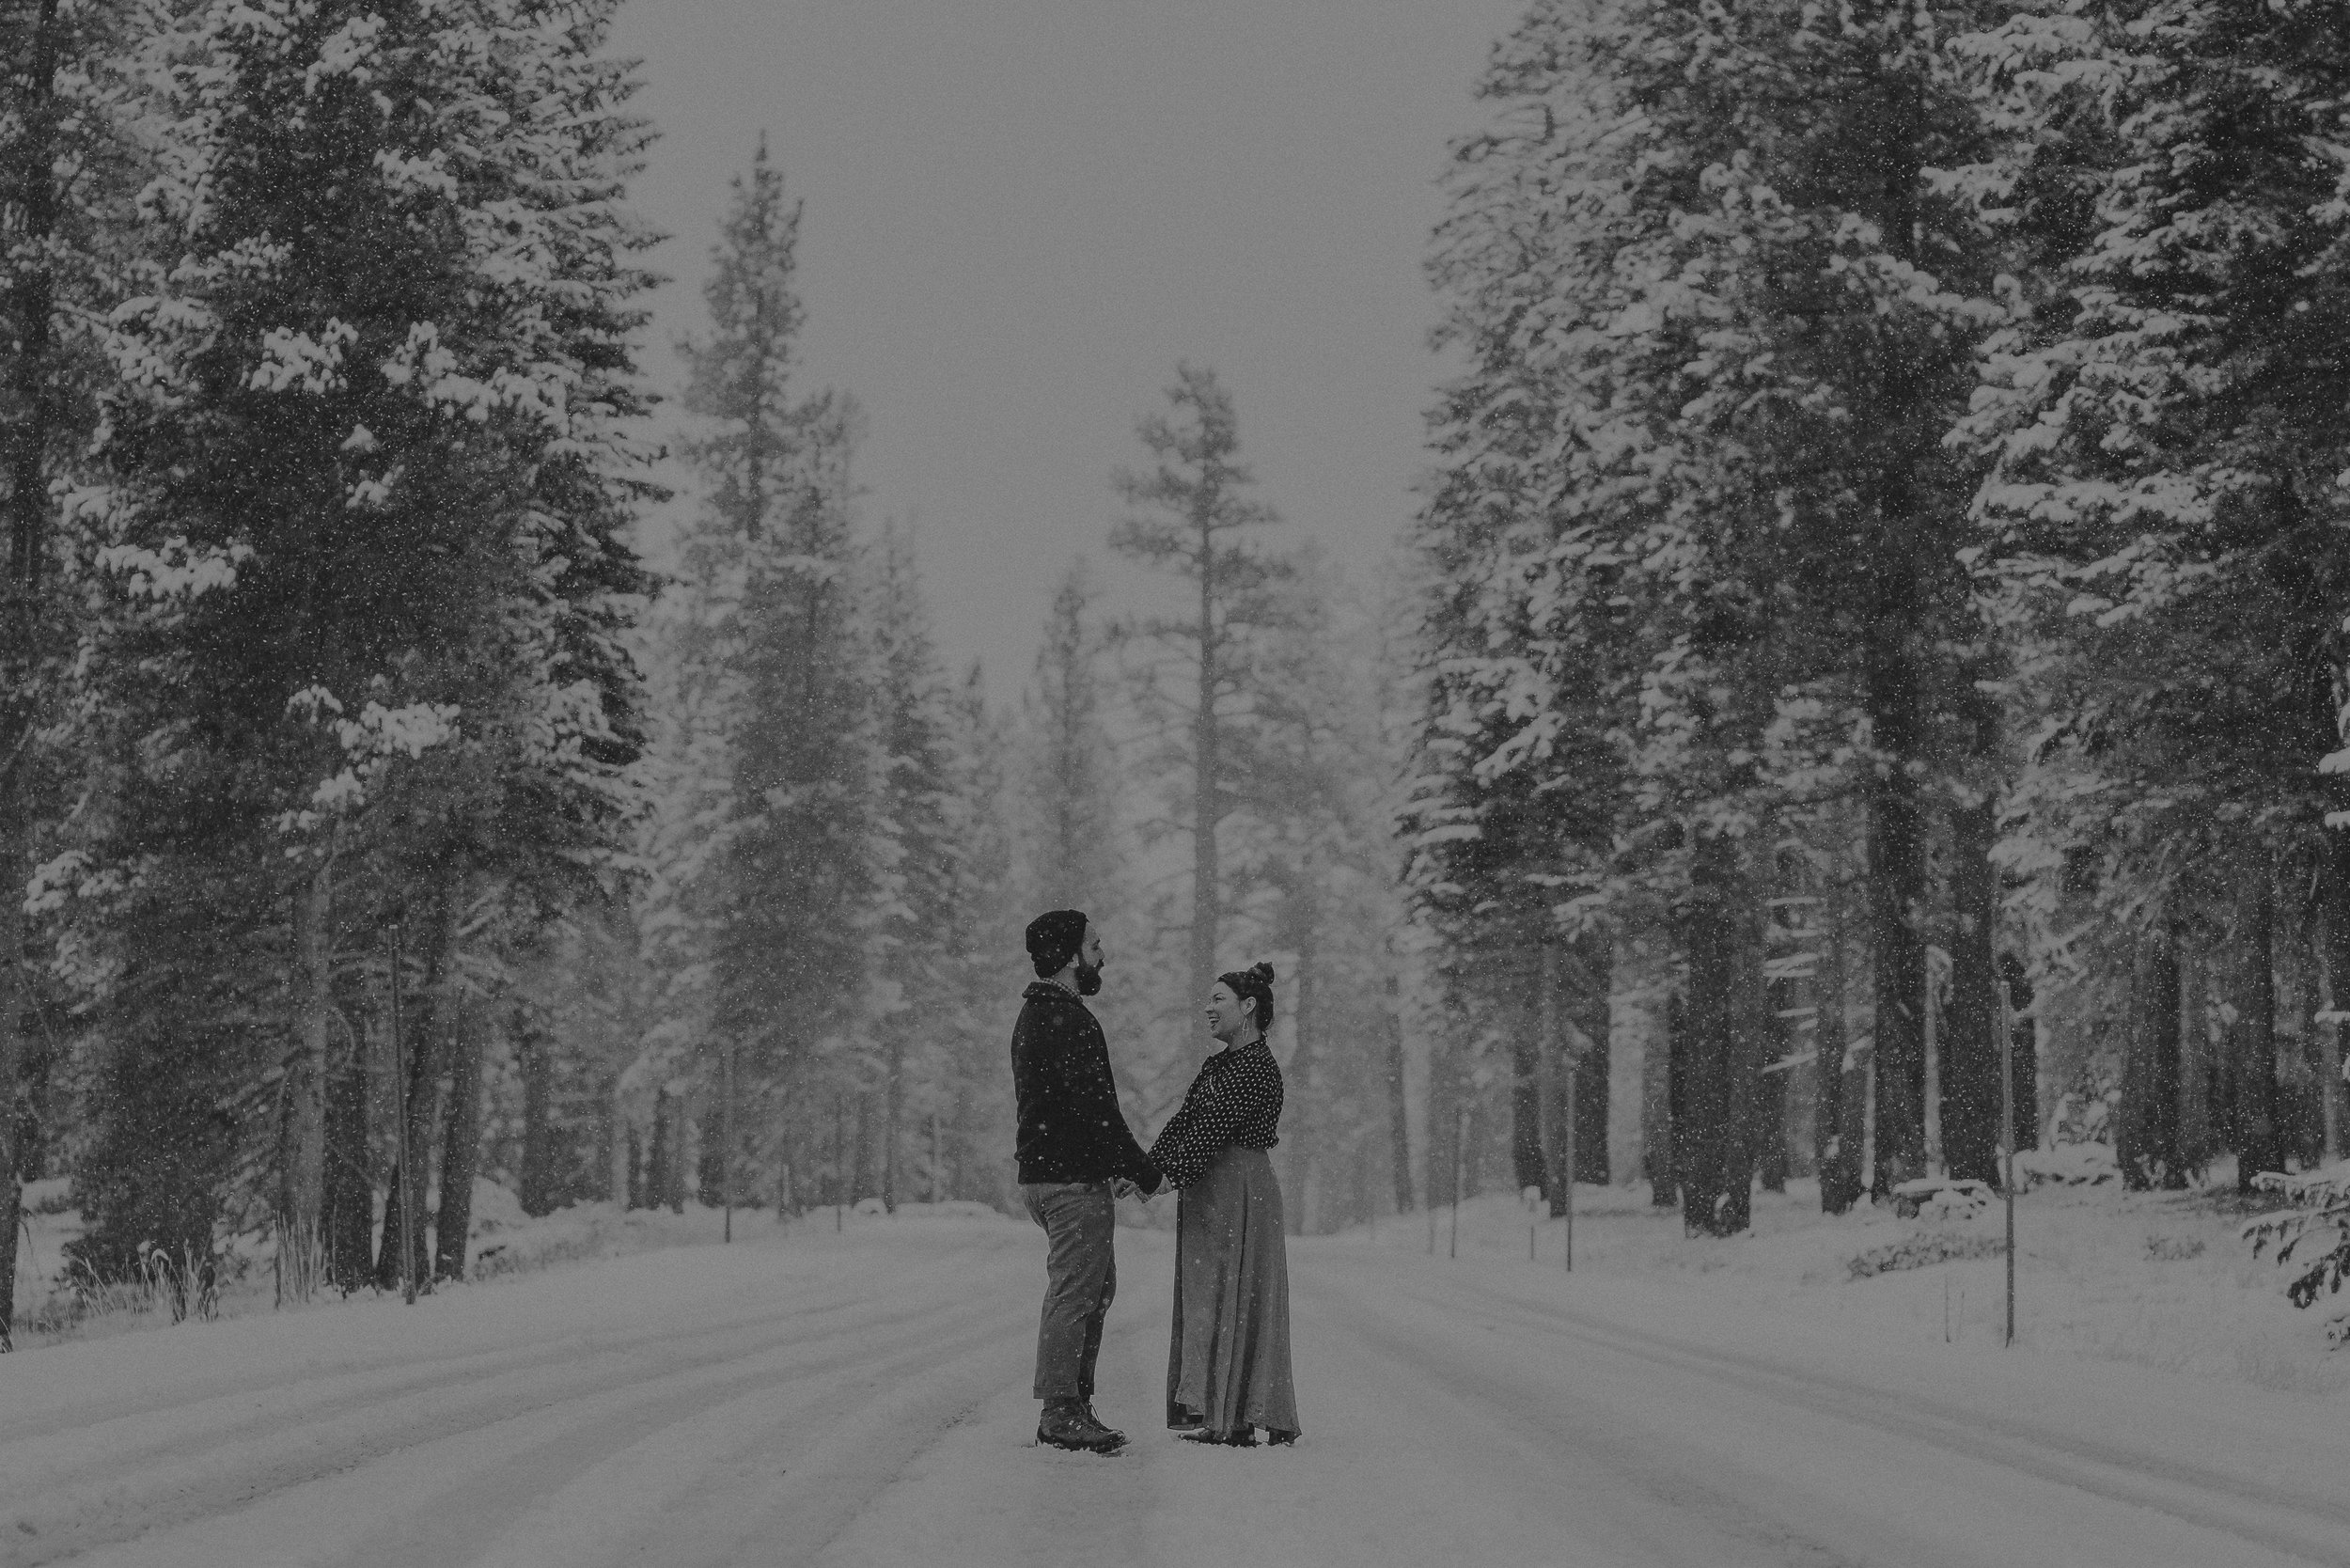 ©Isaiah + Taylor Photography - Los Angeles Wedding Photographer - Snowing engagement session-028.jpg